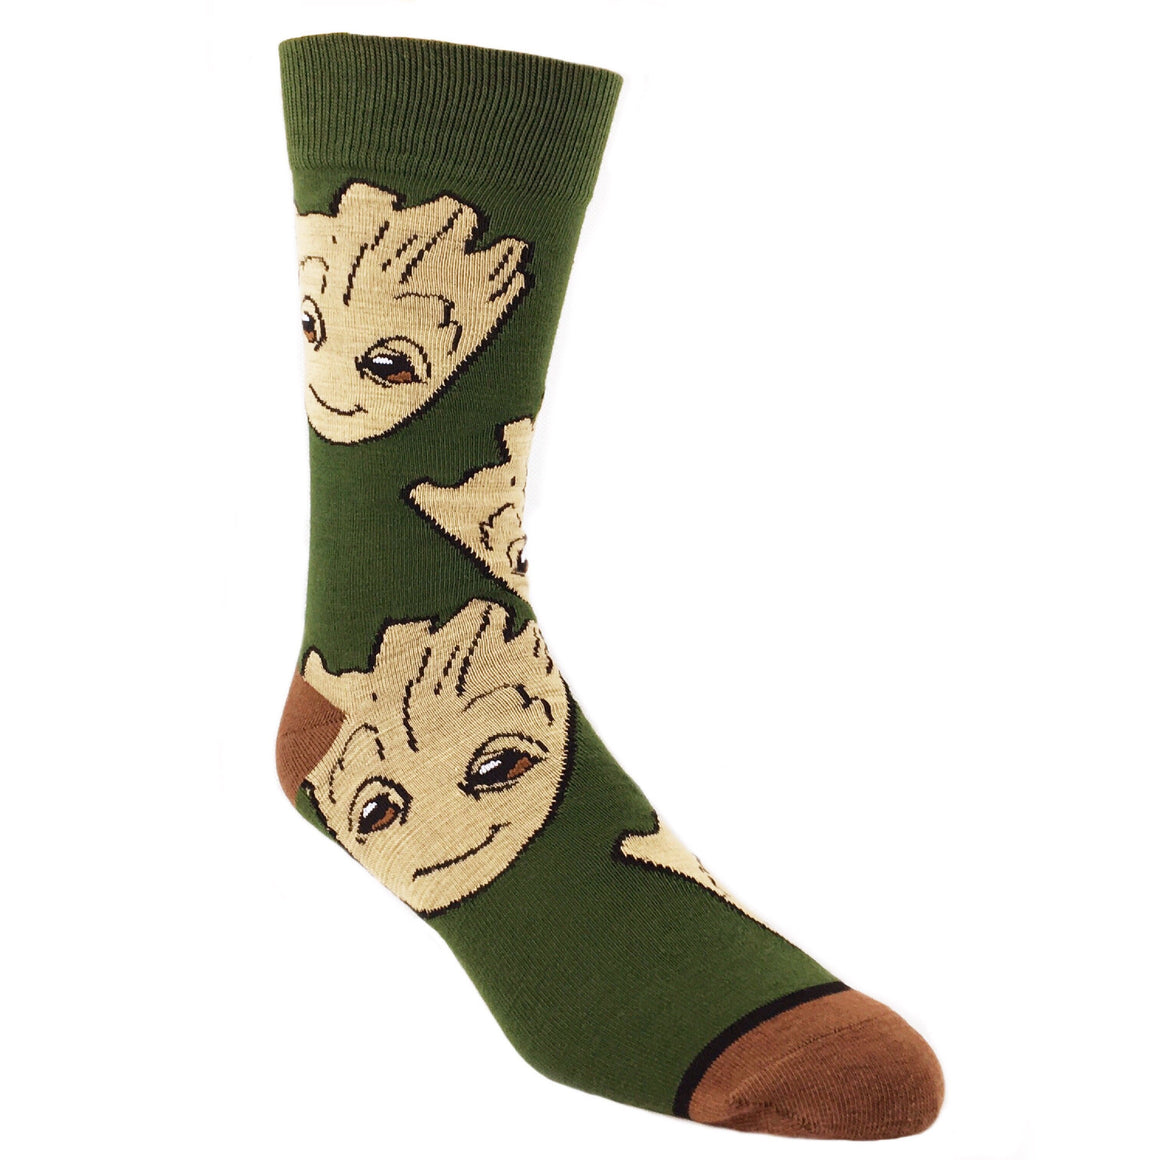 Marvel Guardians of the Galaxy Groot Large All Over Print Superhero Socks - The Sock Spot